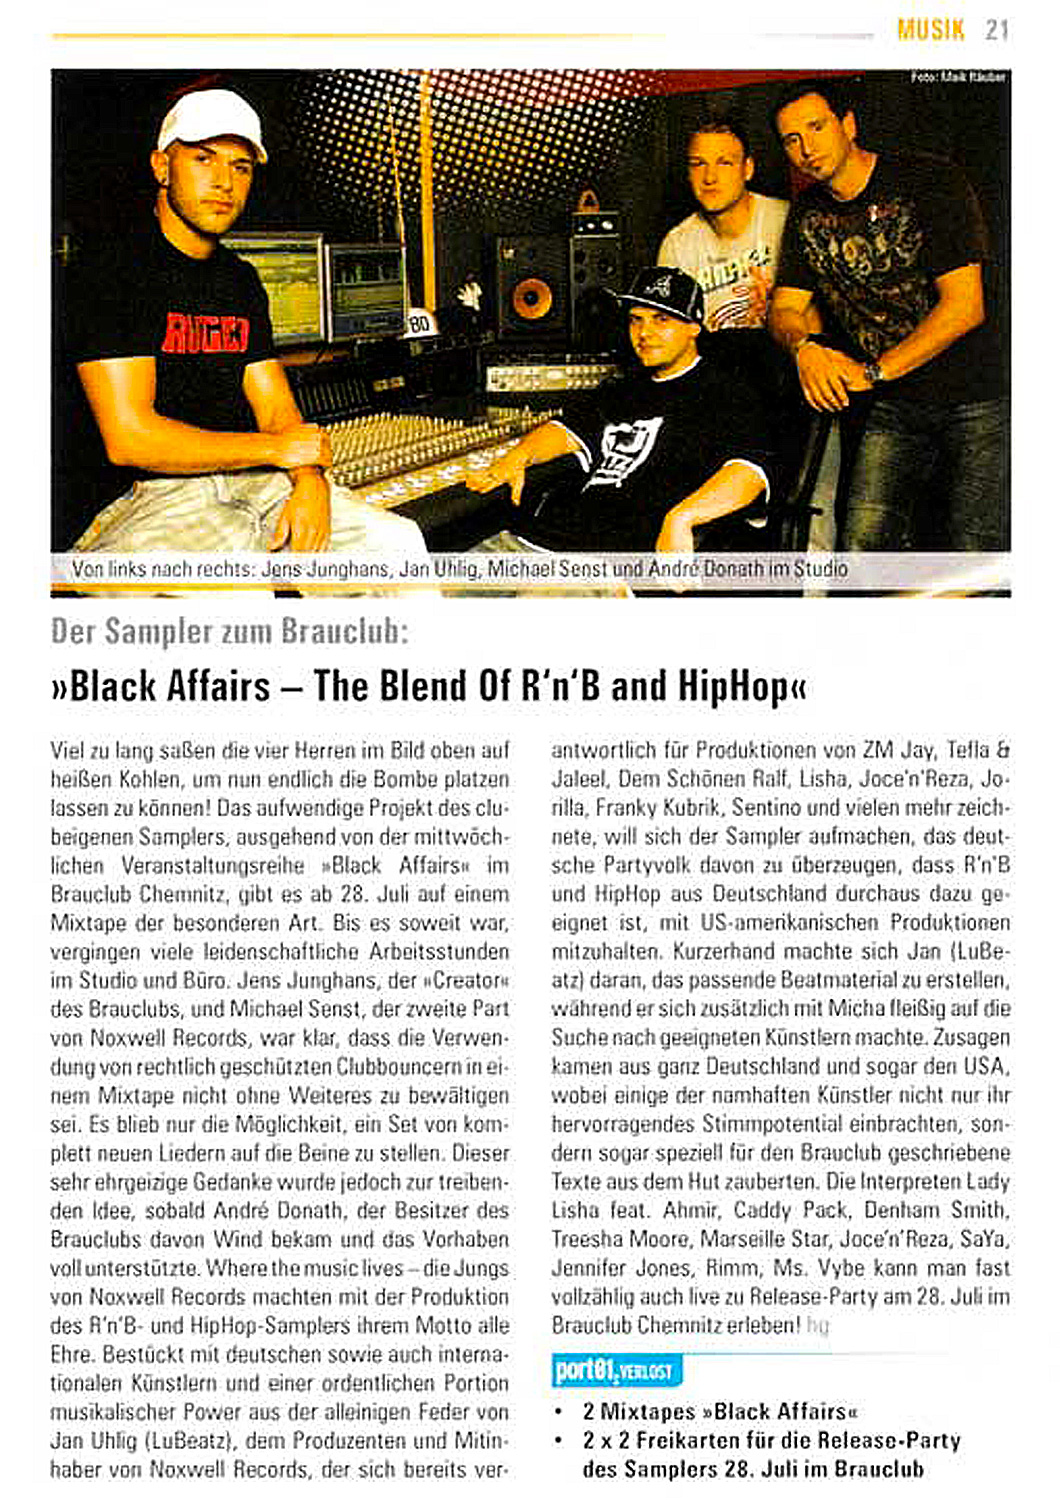 Jan Uhlig - LuBeatz - Noxwell - Black Affairs - The Blend Of R'n'B and Hiphop